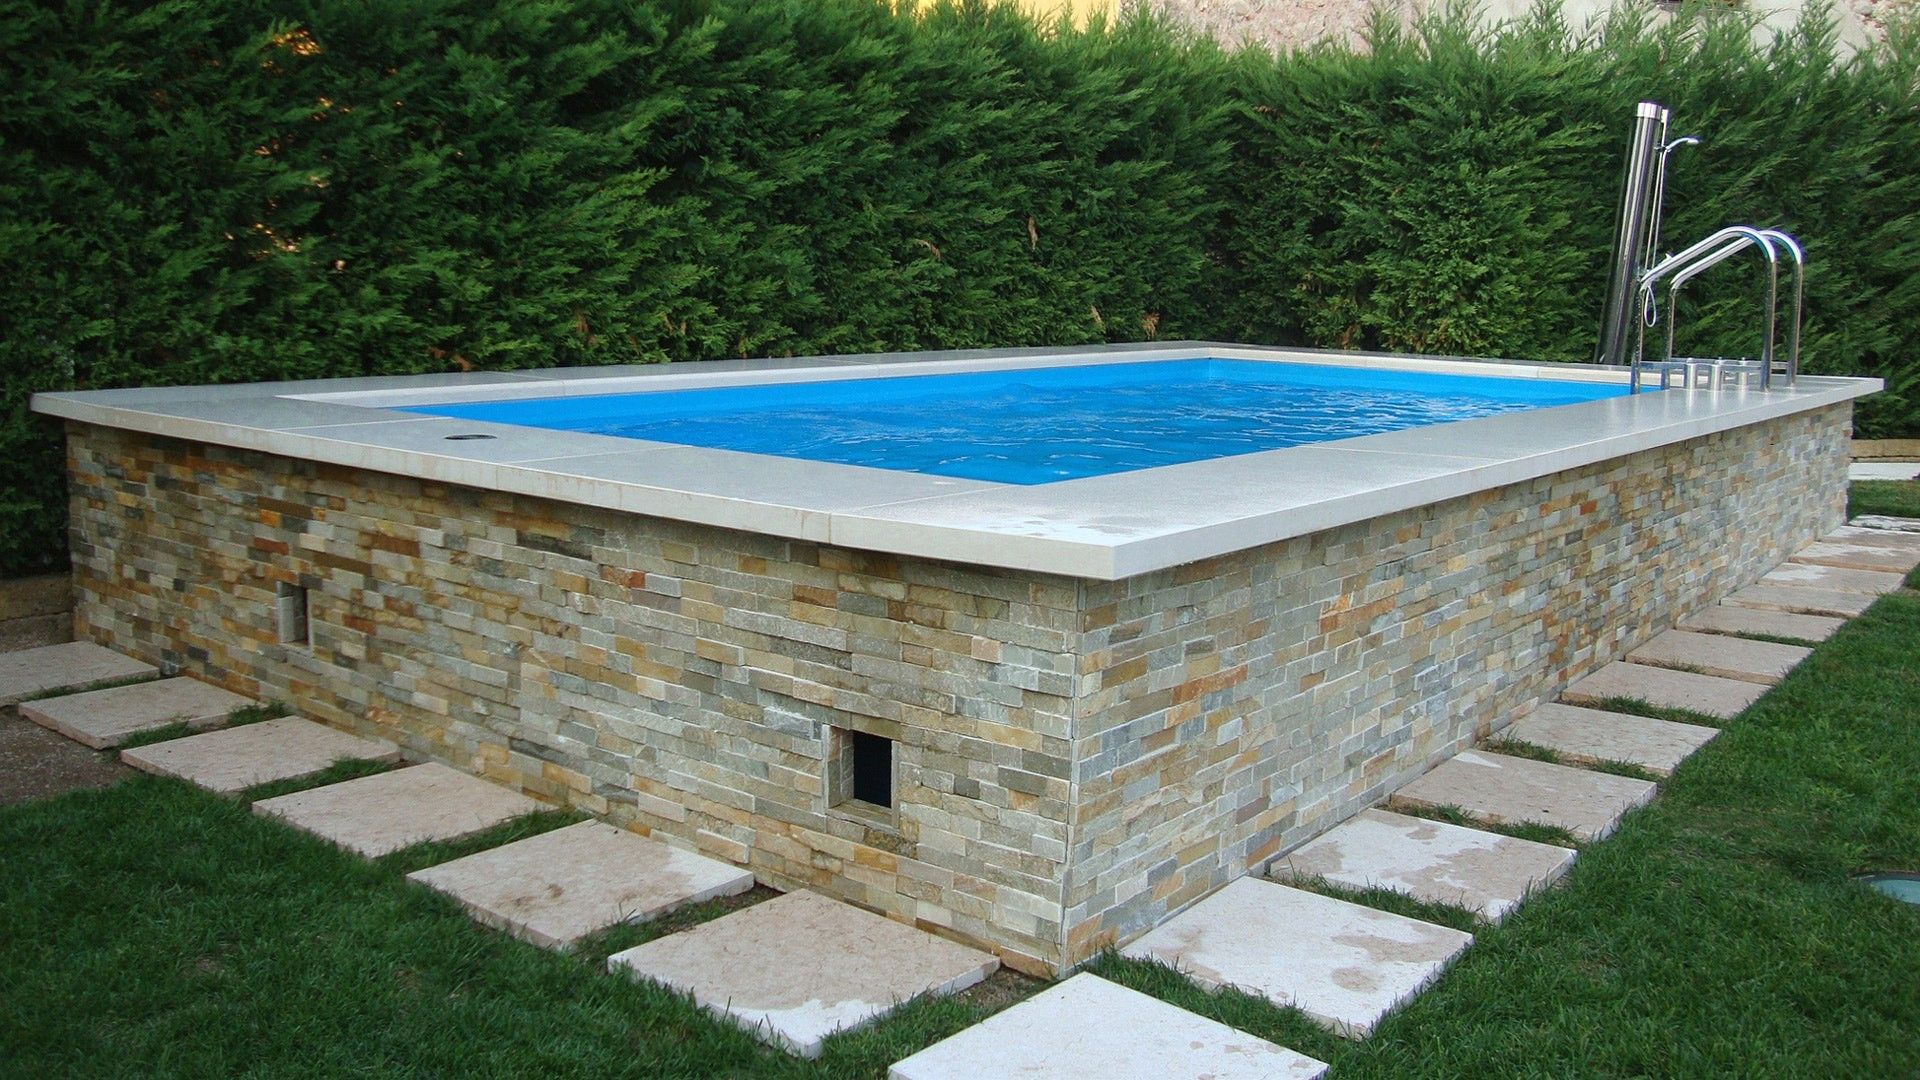 Awesome Piscine Semi Enterree Castorama Piscine Hors Sol Piscine Hors Sol Beton Amenagement Piscine Hors Sol